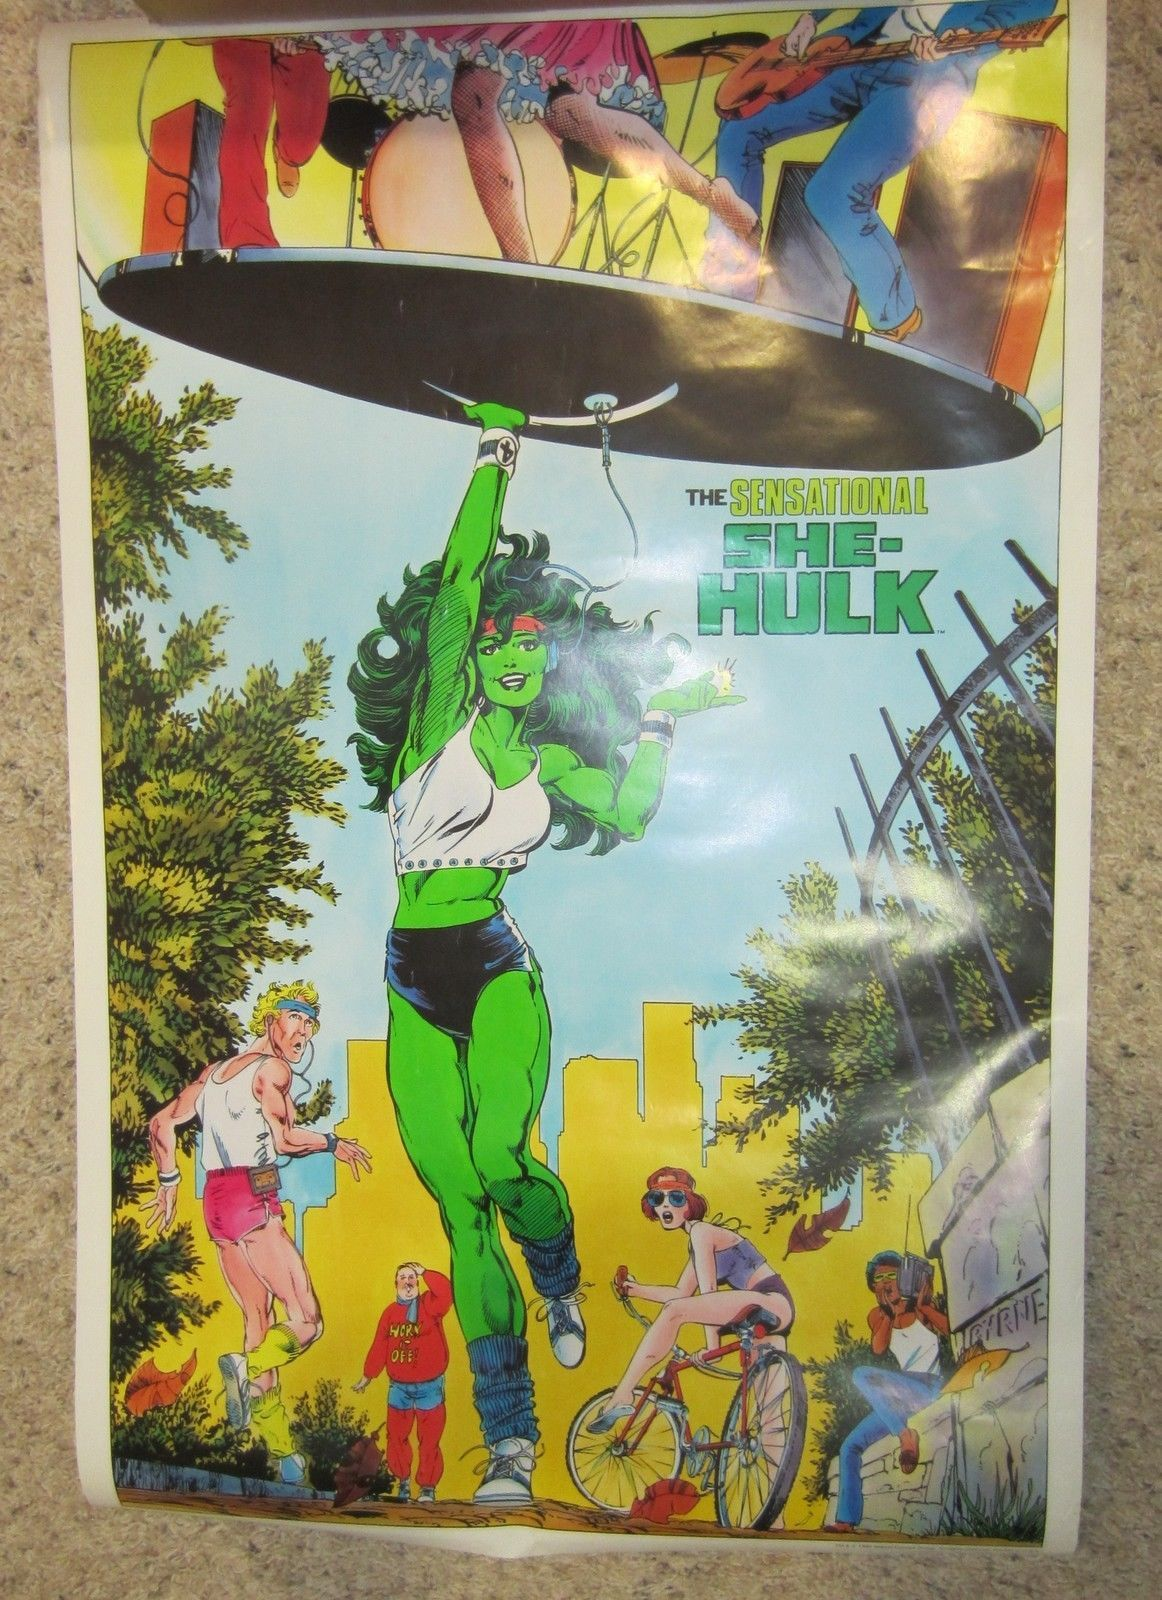 Primary image for VINTAGE THE SENSATIONAL SHE HULK POSTER - MARVEL COMICS